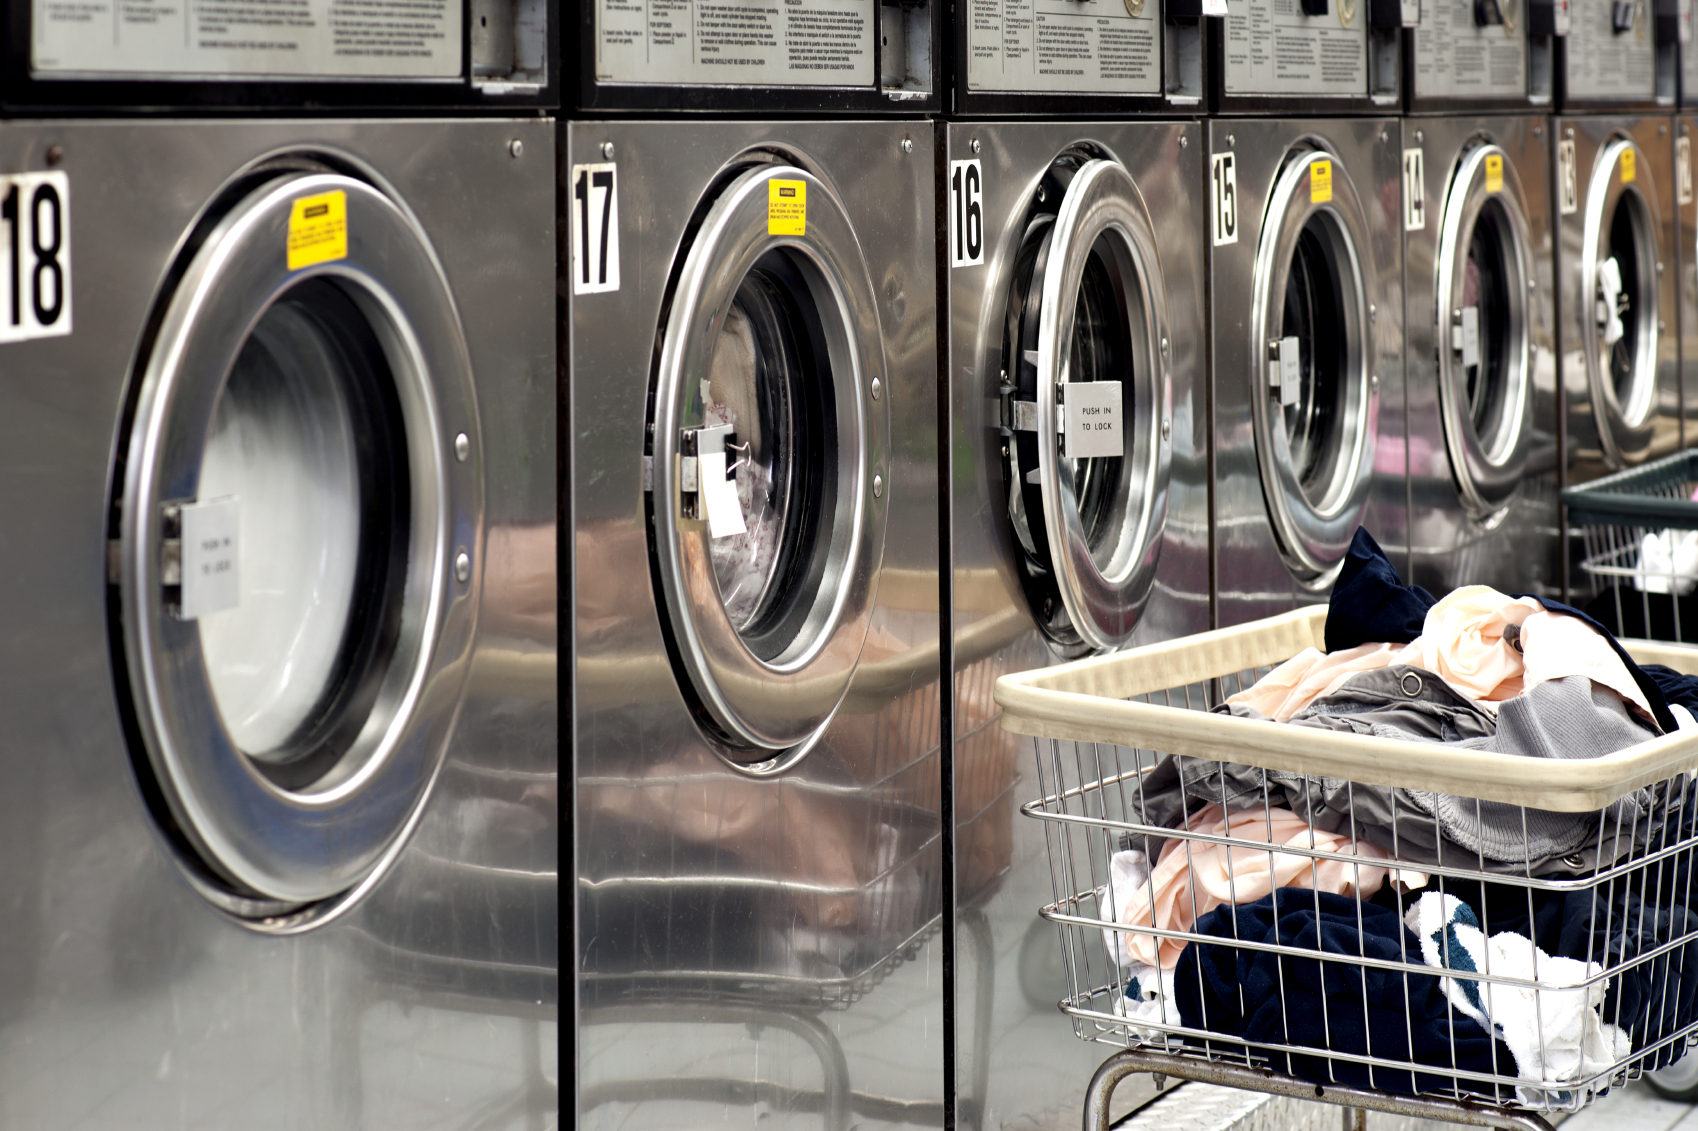 Coin Operated Vs Card Operated Commercial Laundry Equipment